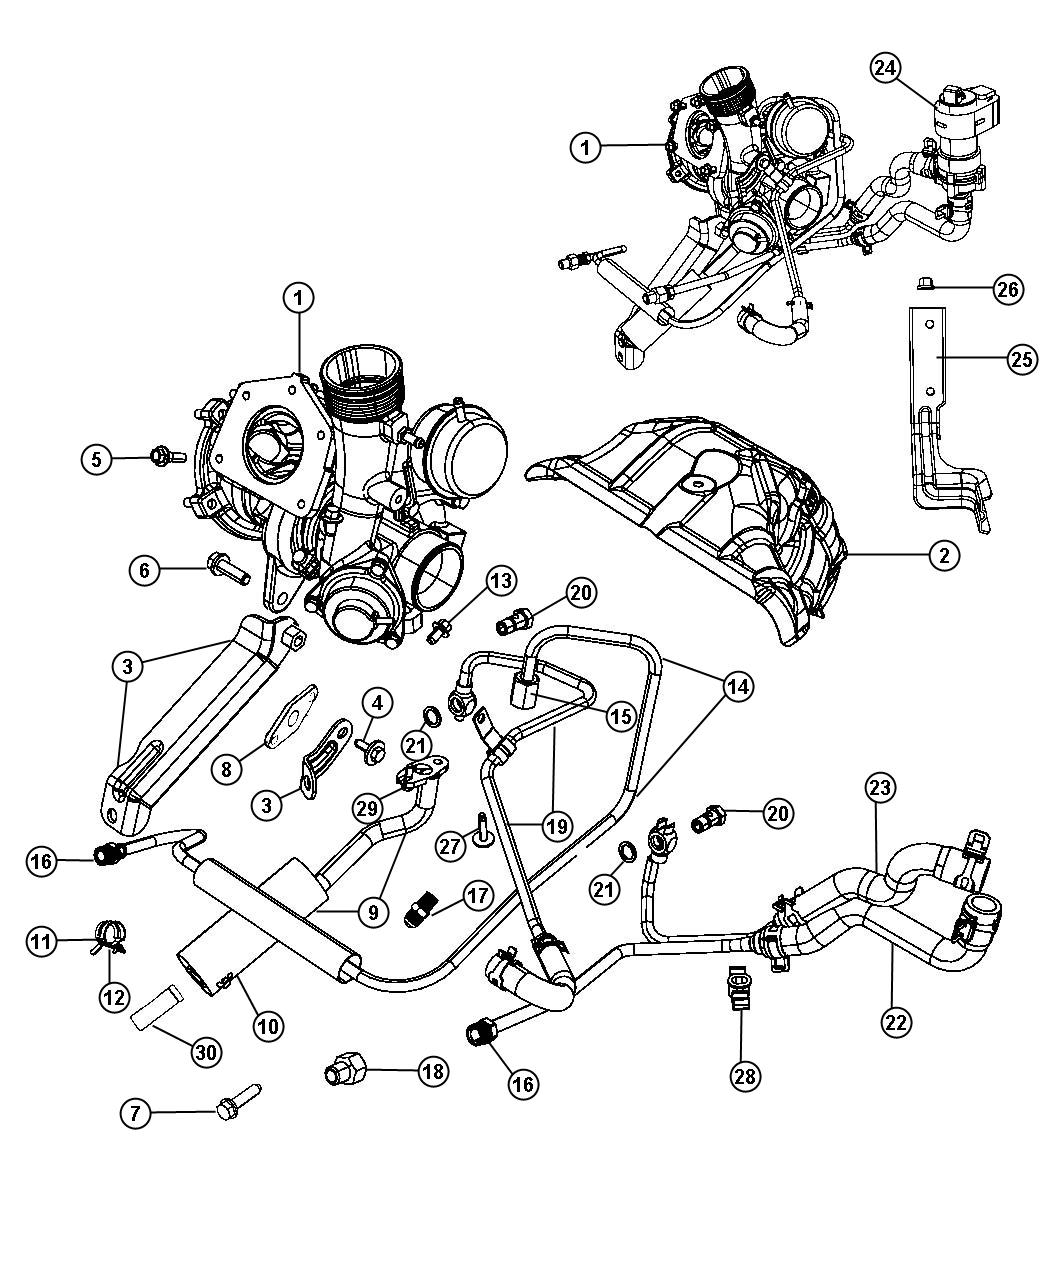 Dodge Caliber Serpentine Belt Diagram